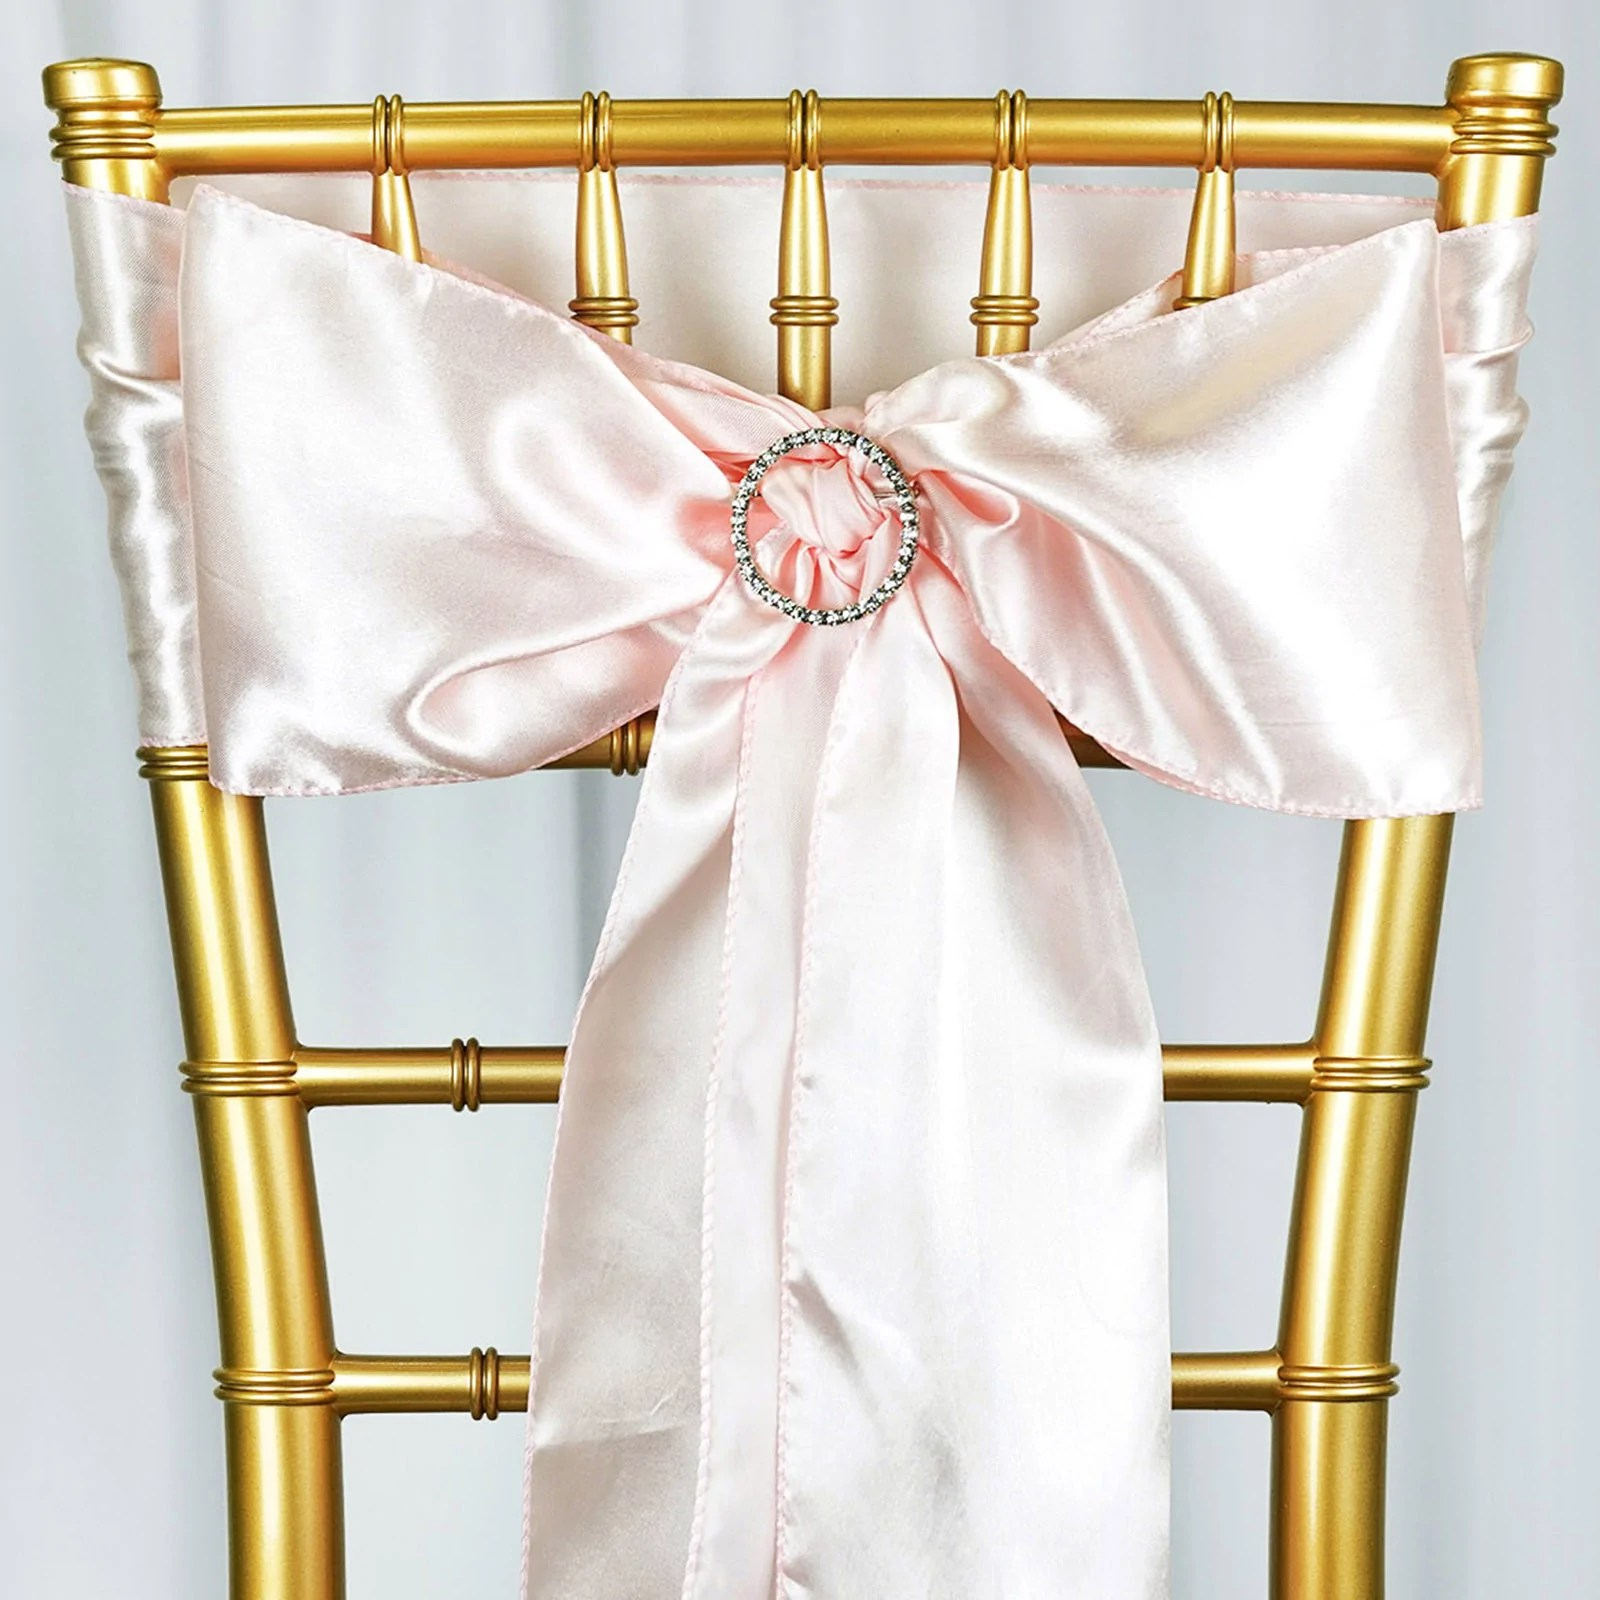 rose gold satin chair sashes wicker fan back chairs 5 pack 6 x106 blush sash tablecloths factory